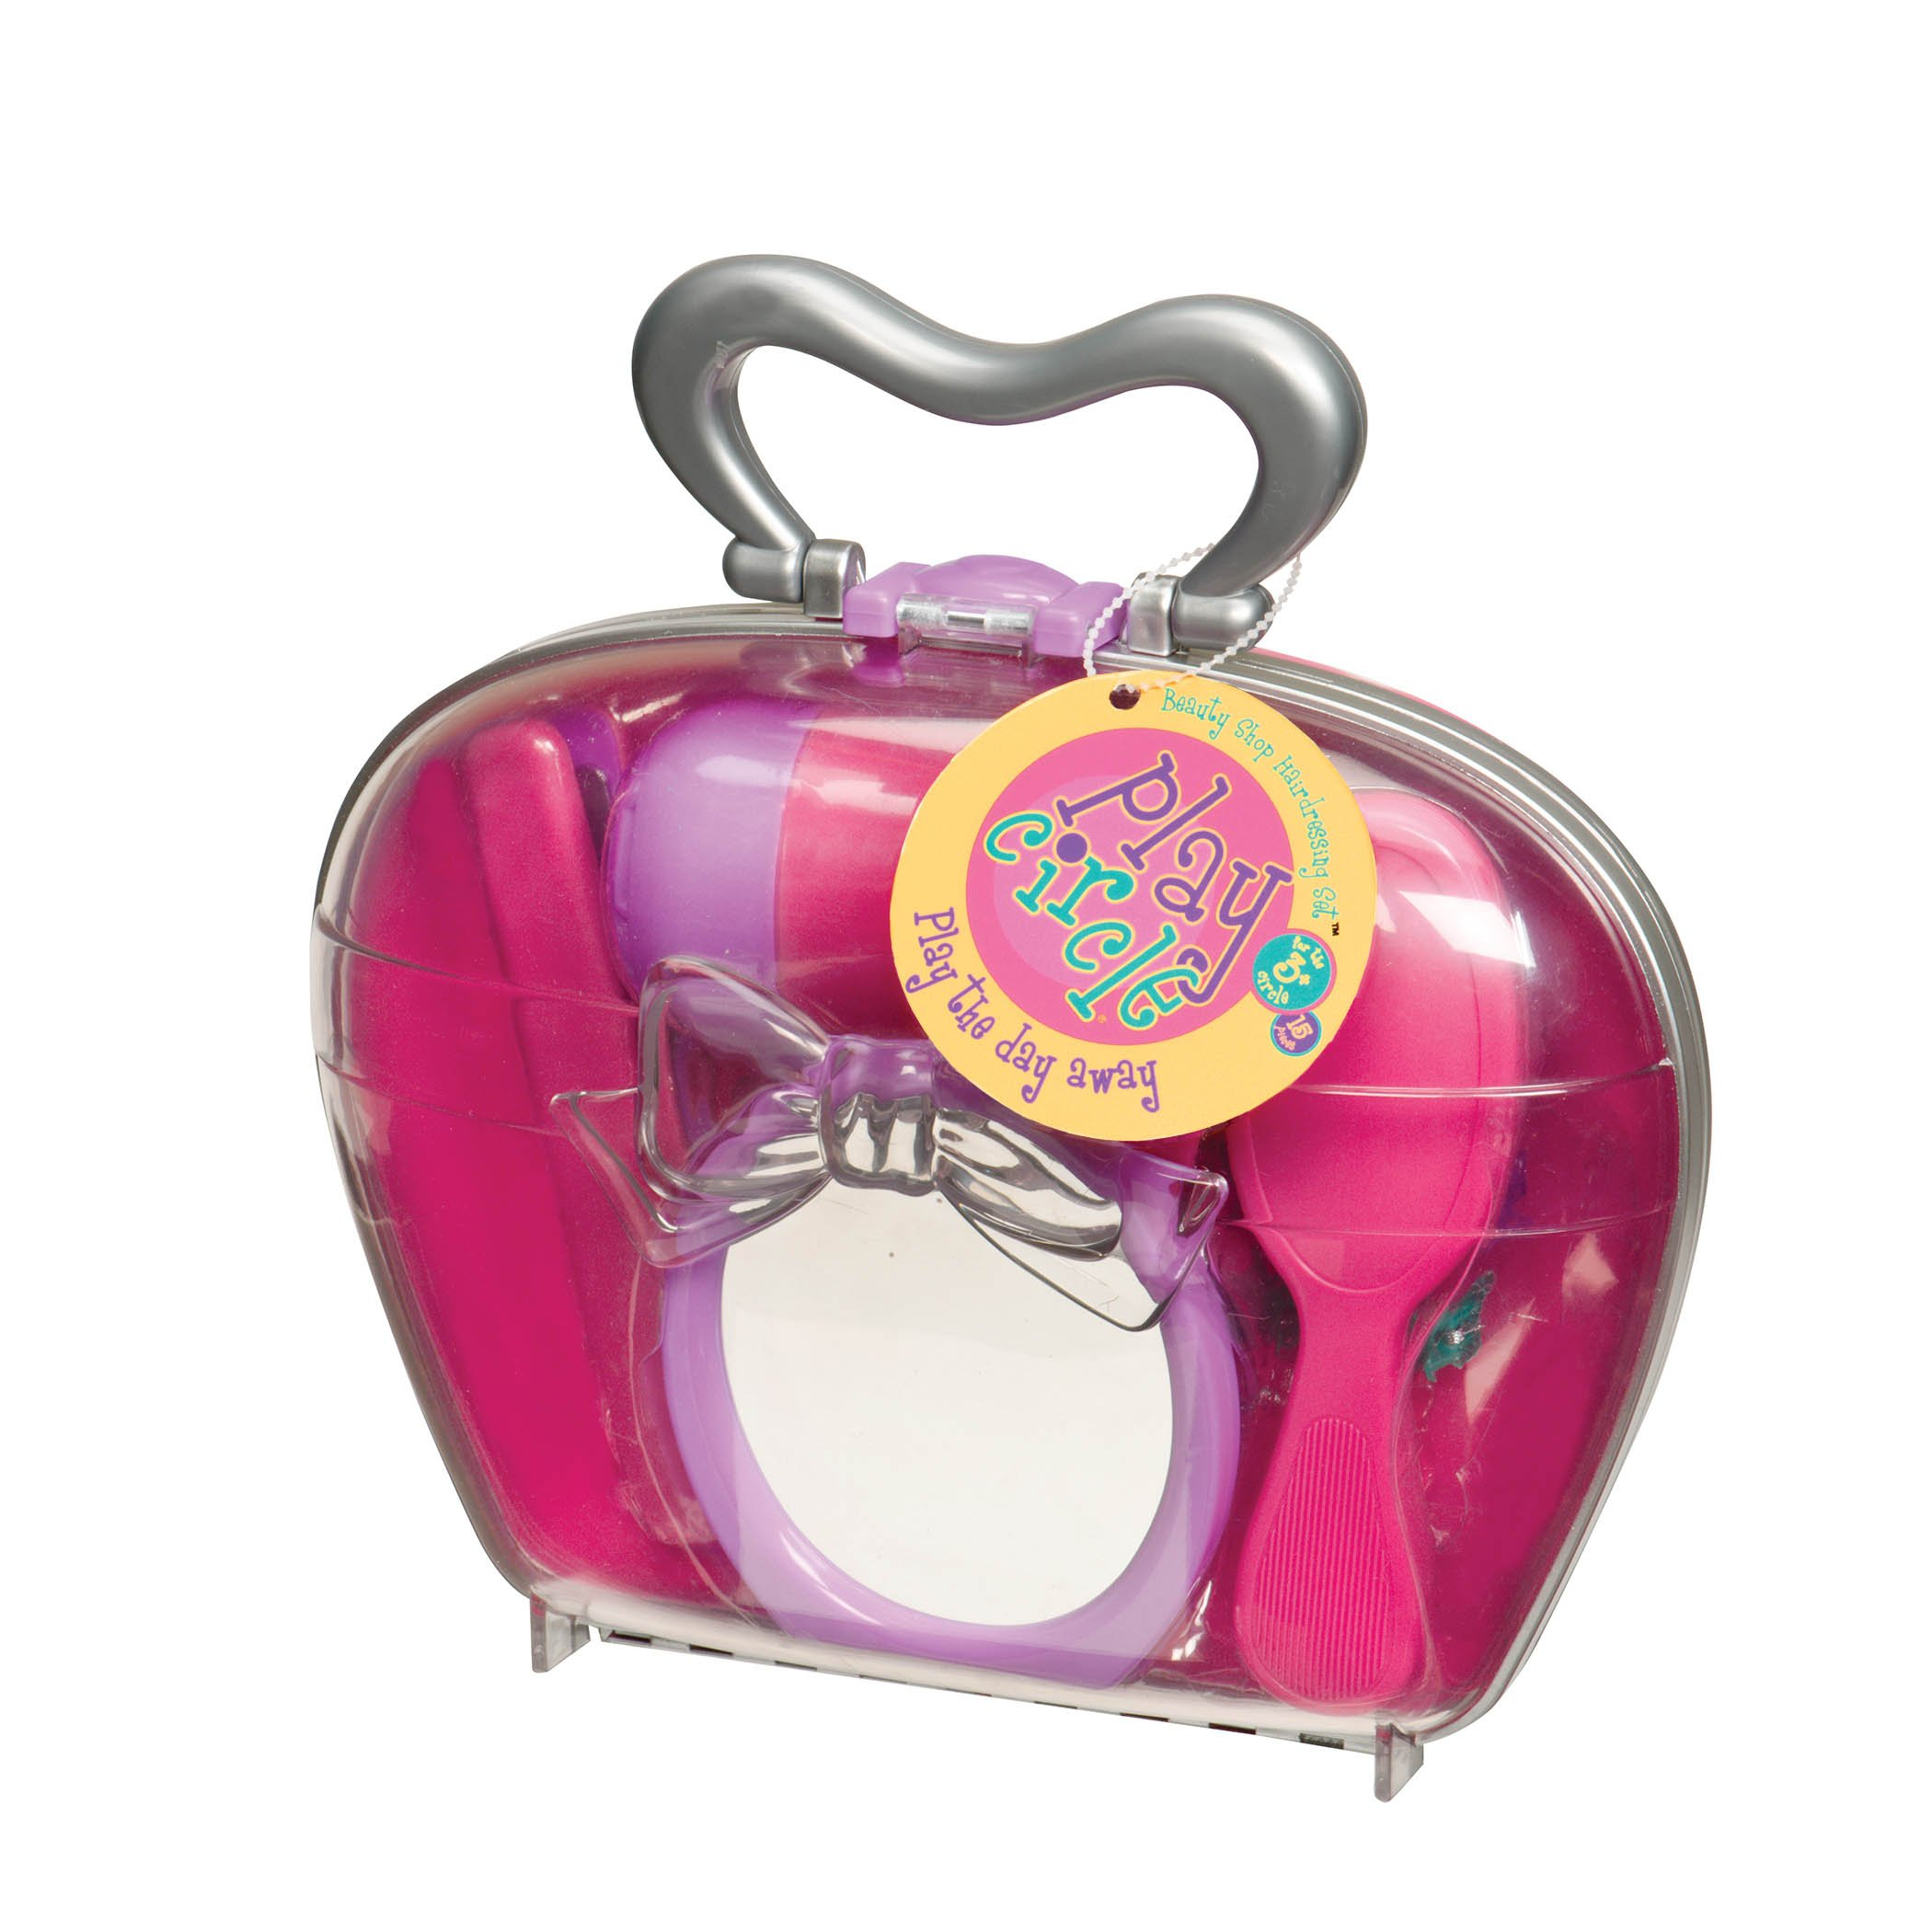 Play Circle by Battat Beauty Shop Children's Hairdressing Set and Hair Dryer, Pink